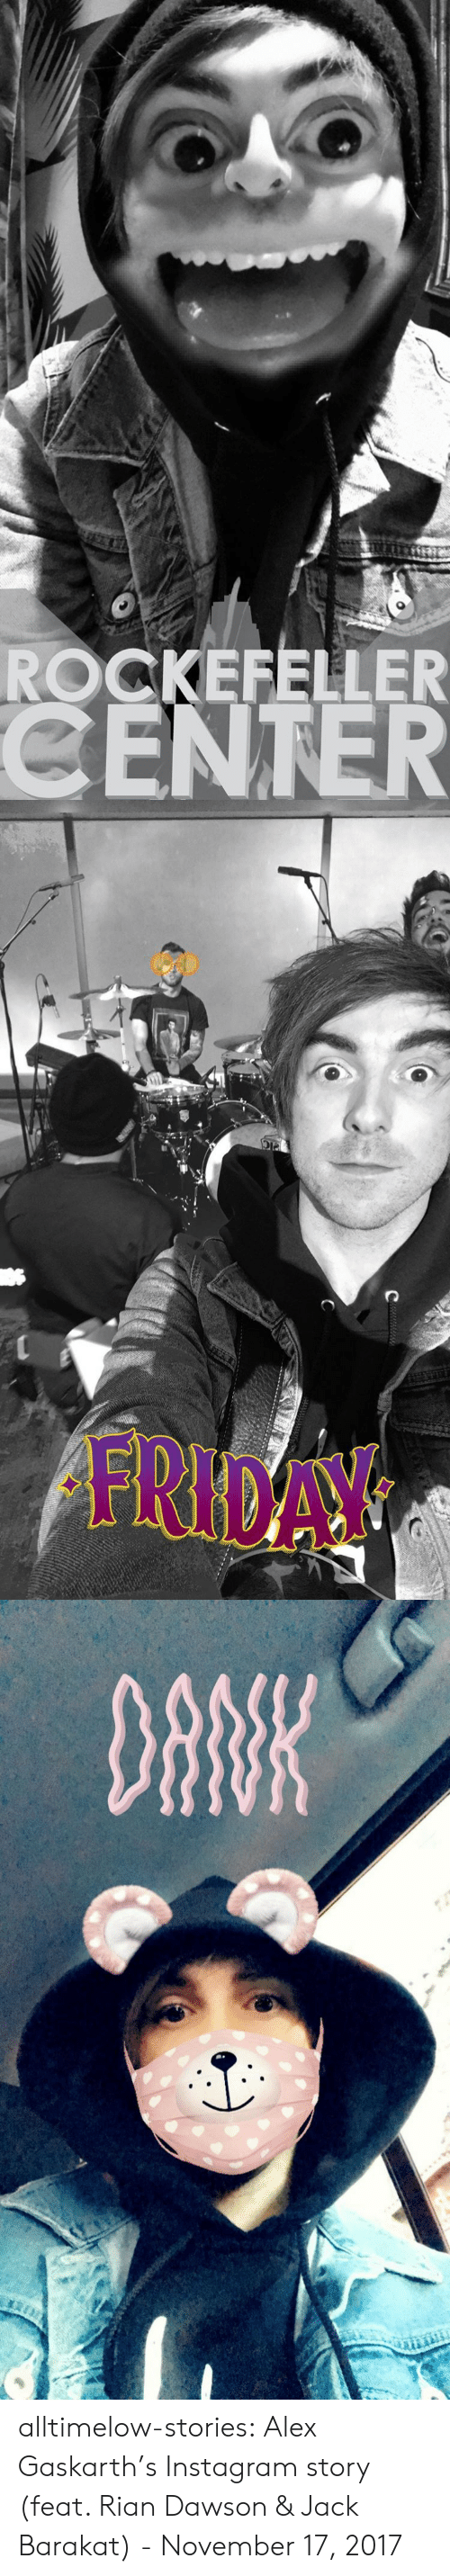 feat: ROCKEFELLER  CENTER   FRIDAY   DANK alltimelow-stories:  Alex Gaskarth's Instagram story (feat. Rian Dawson & Jack Barakat) - November 17, 2017